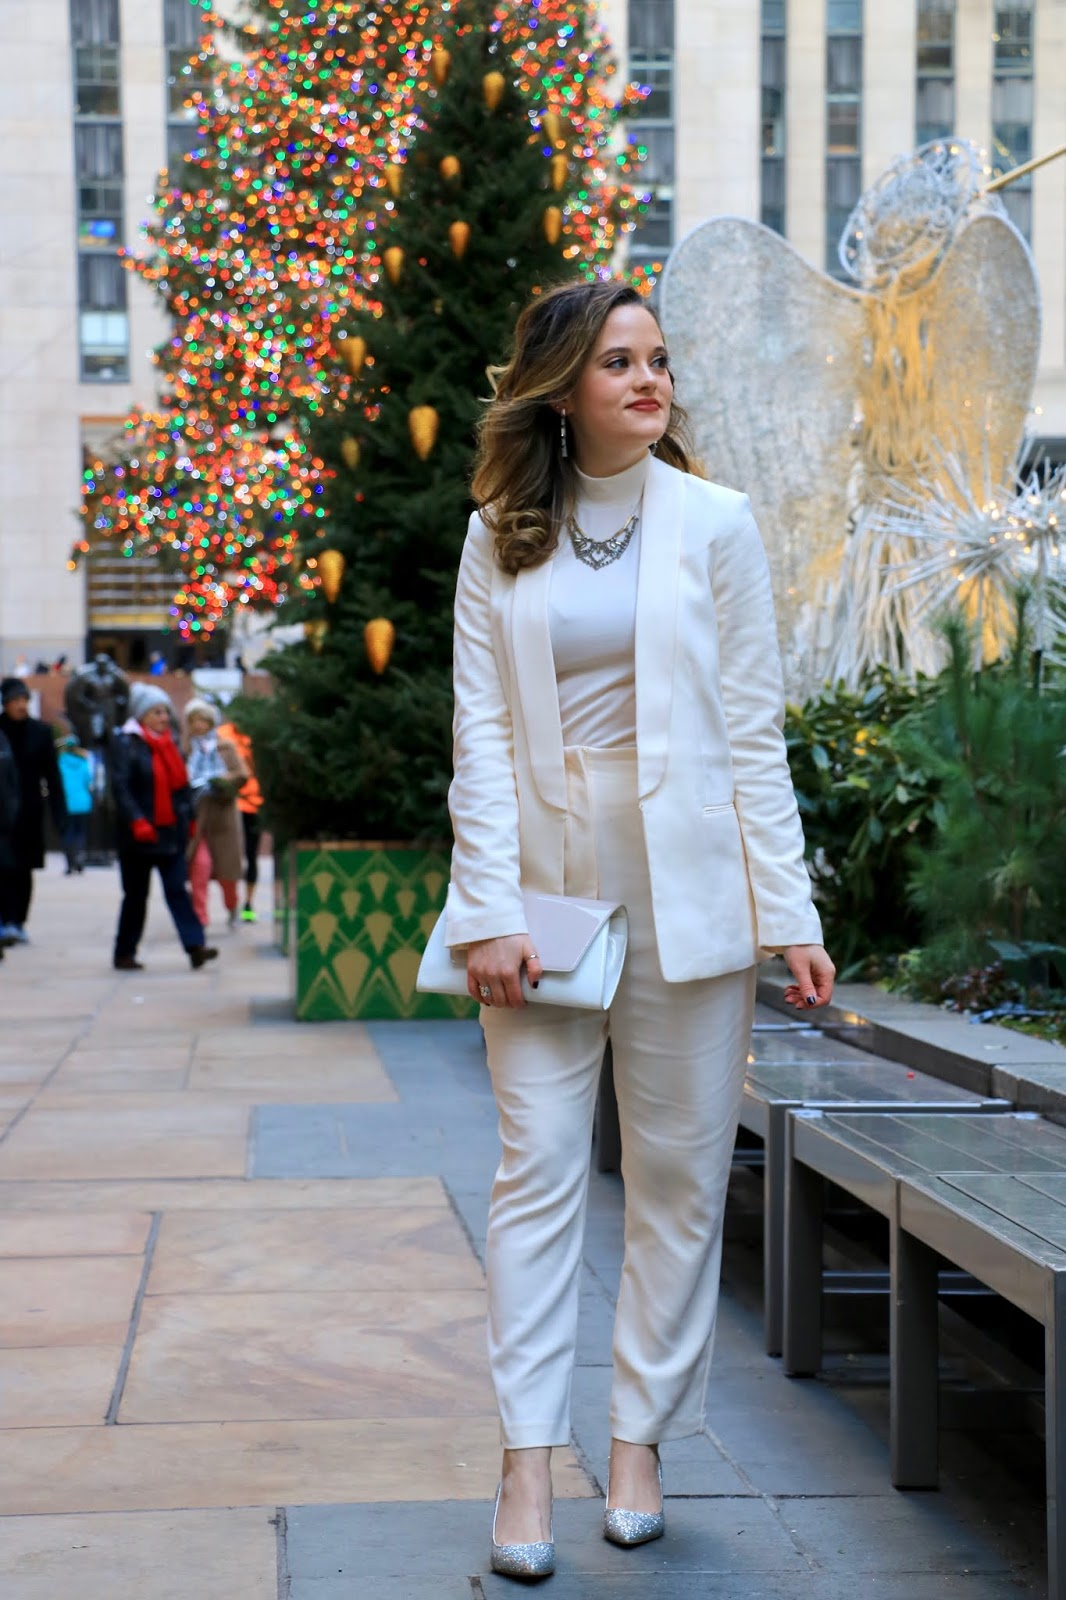 Nyc fashion blogger Kathleen Harper's holiday photo shoot locations in New York.